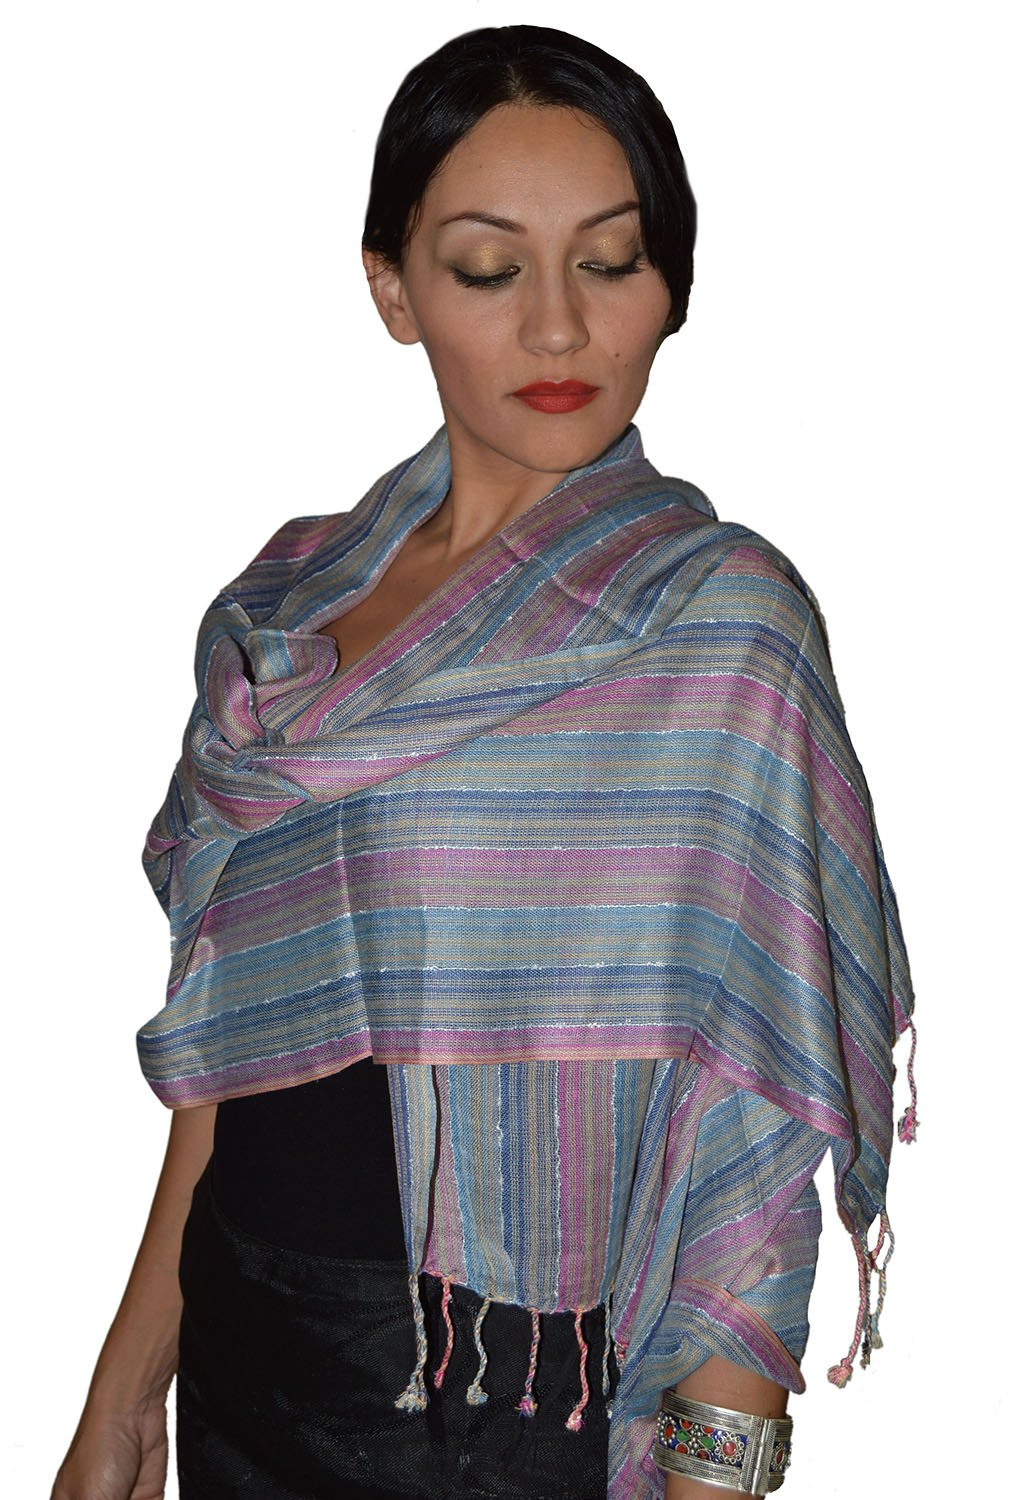 Moroccan Shoulder Shawl Breathable Oblong Head Scarf Cotton Soft Exquisite Wrap